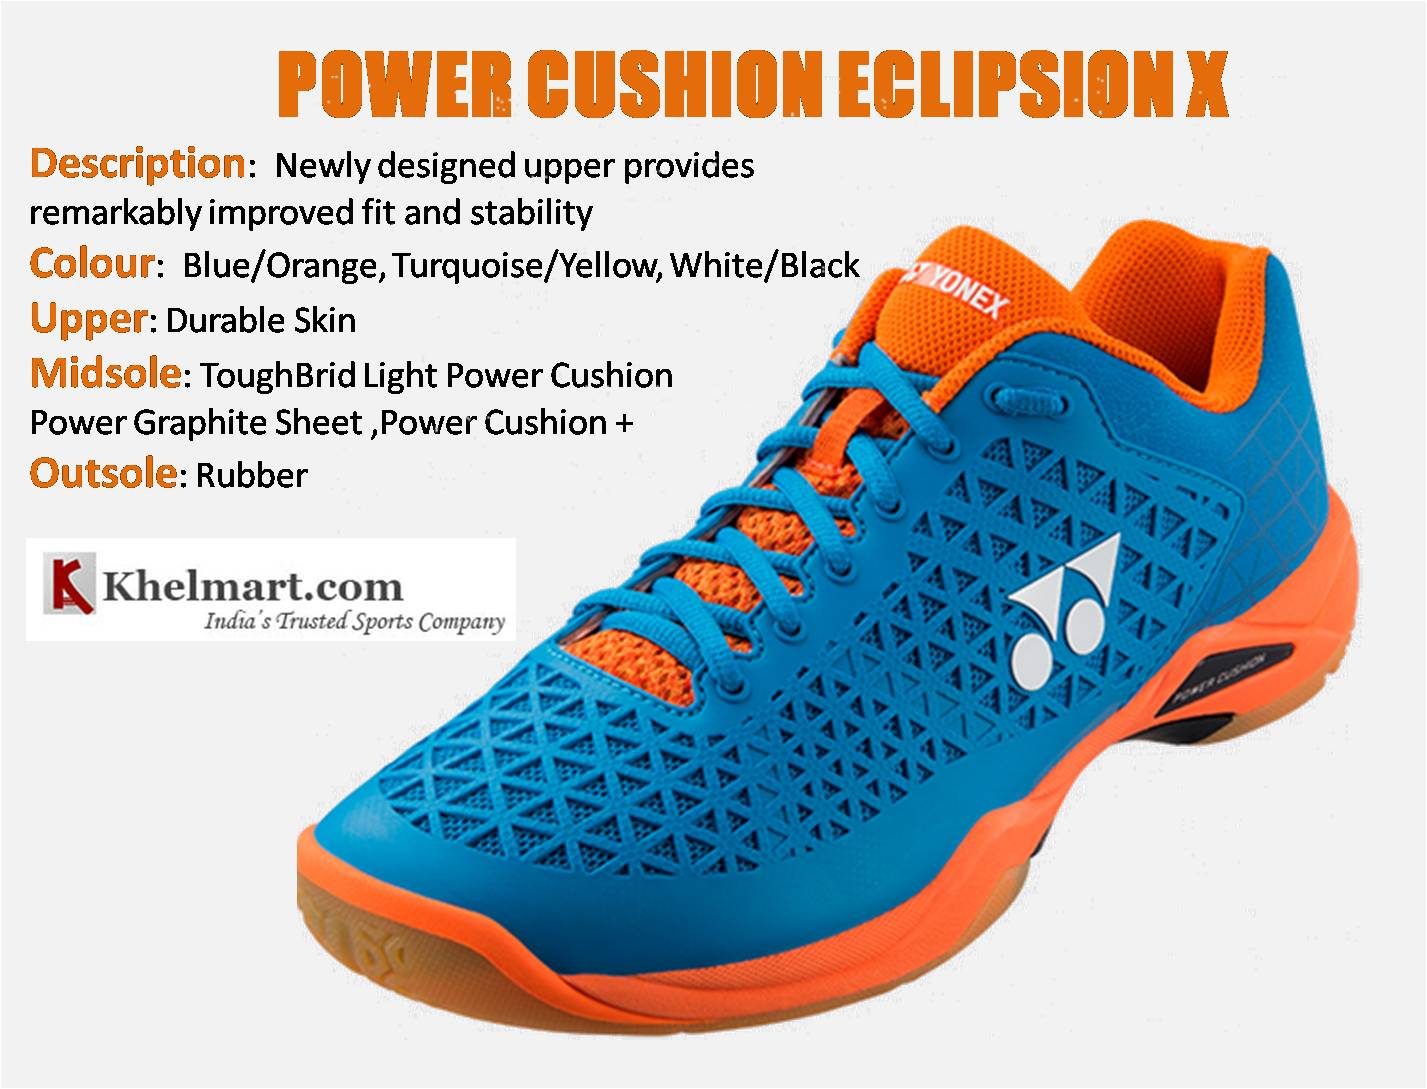 POWER_CUSHION_ECLIPSION_X_badminton_Shoes.jpg